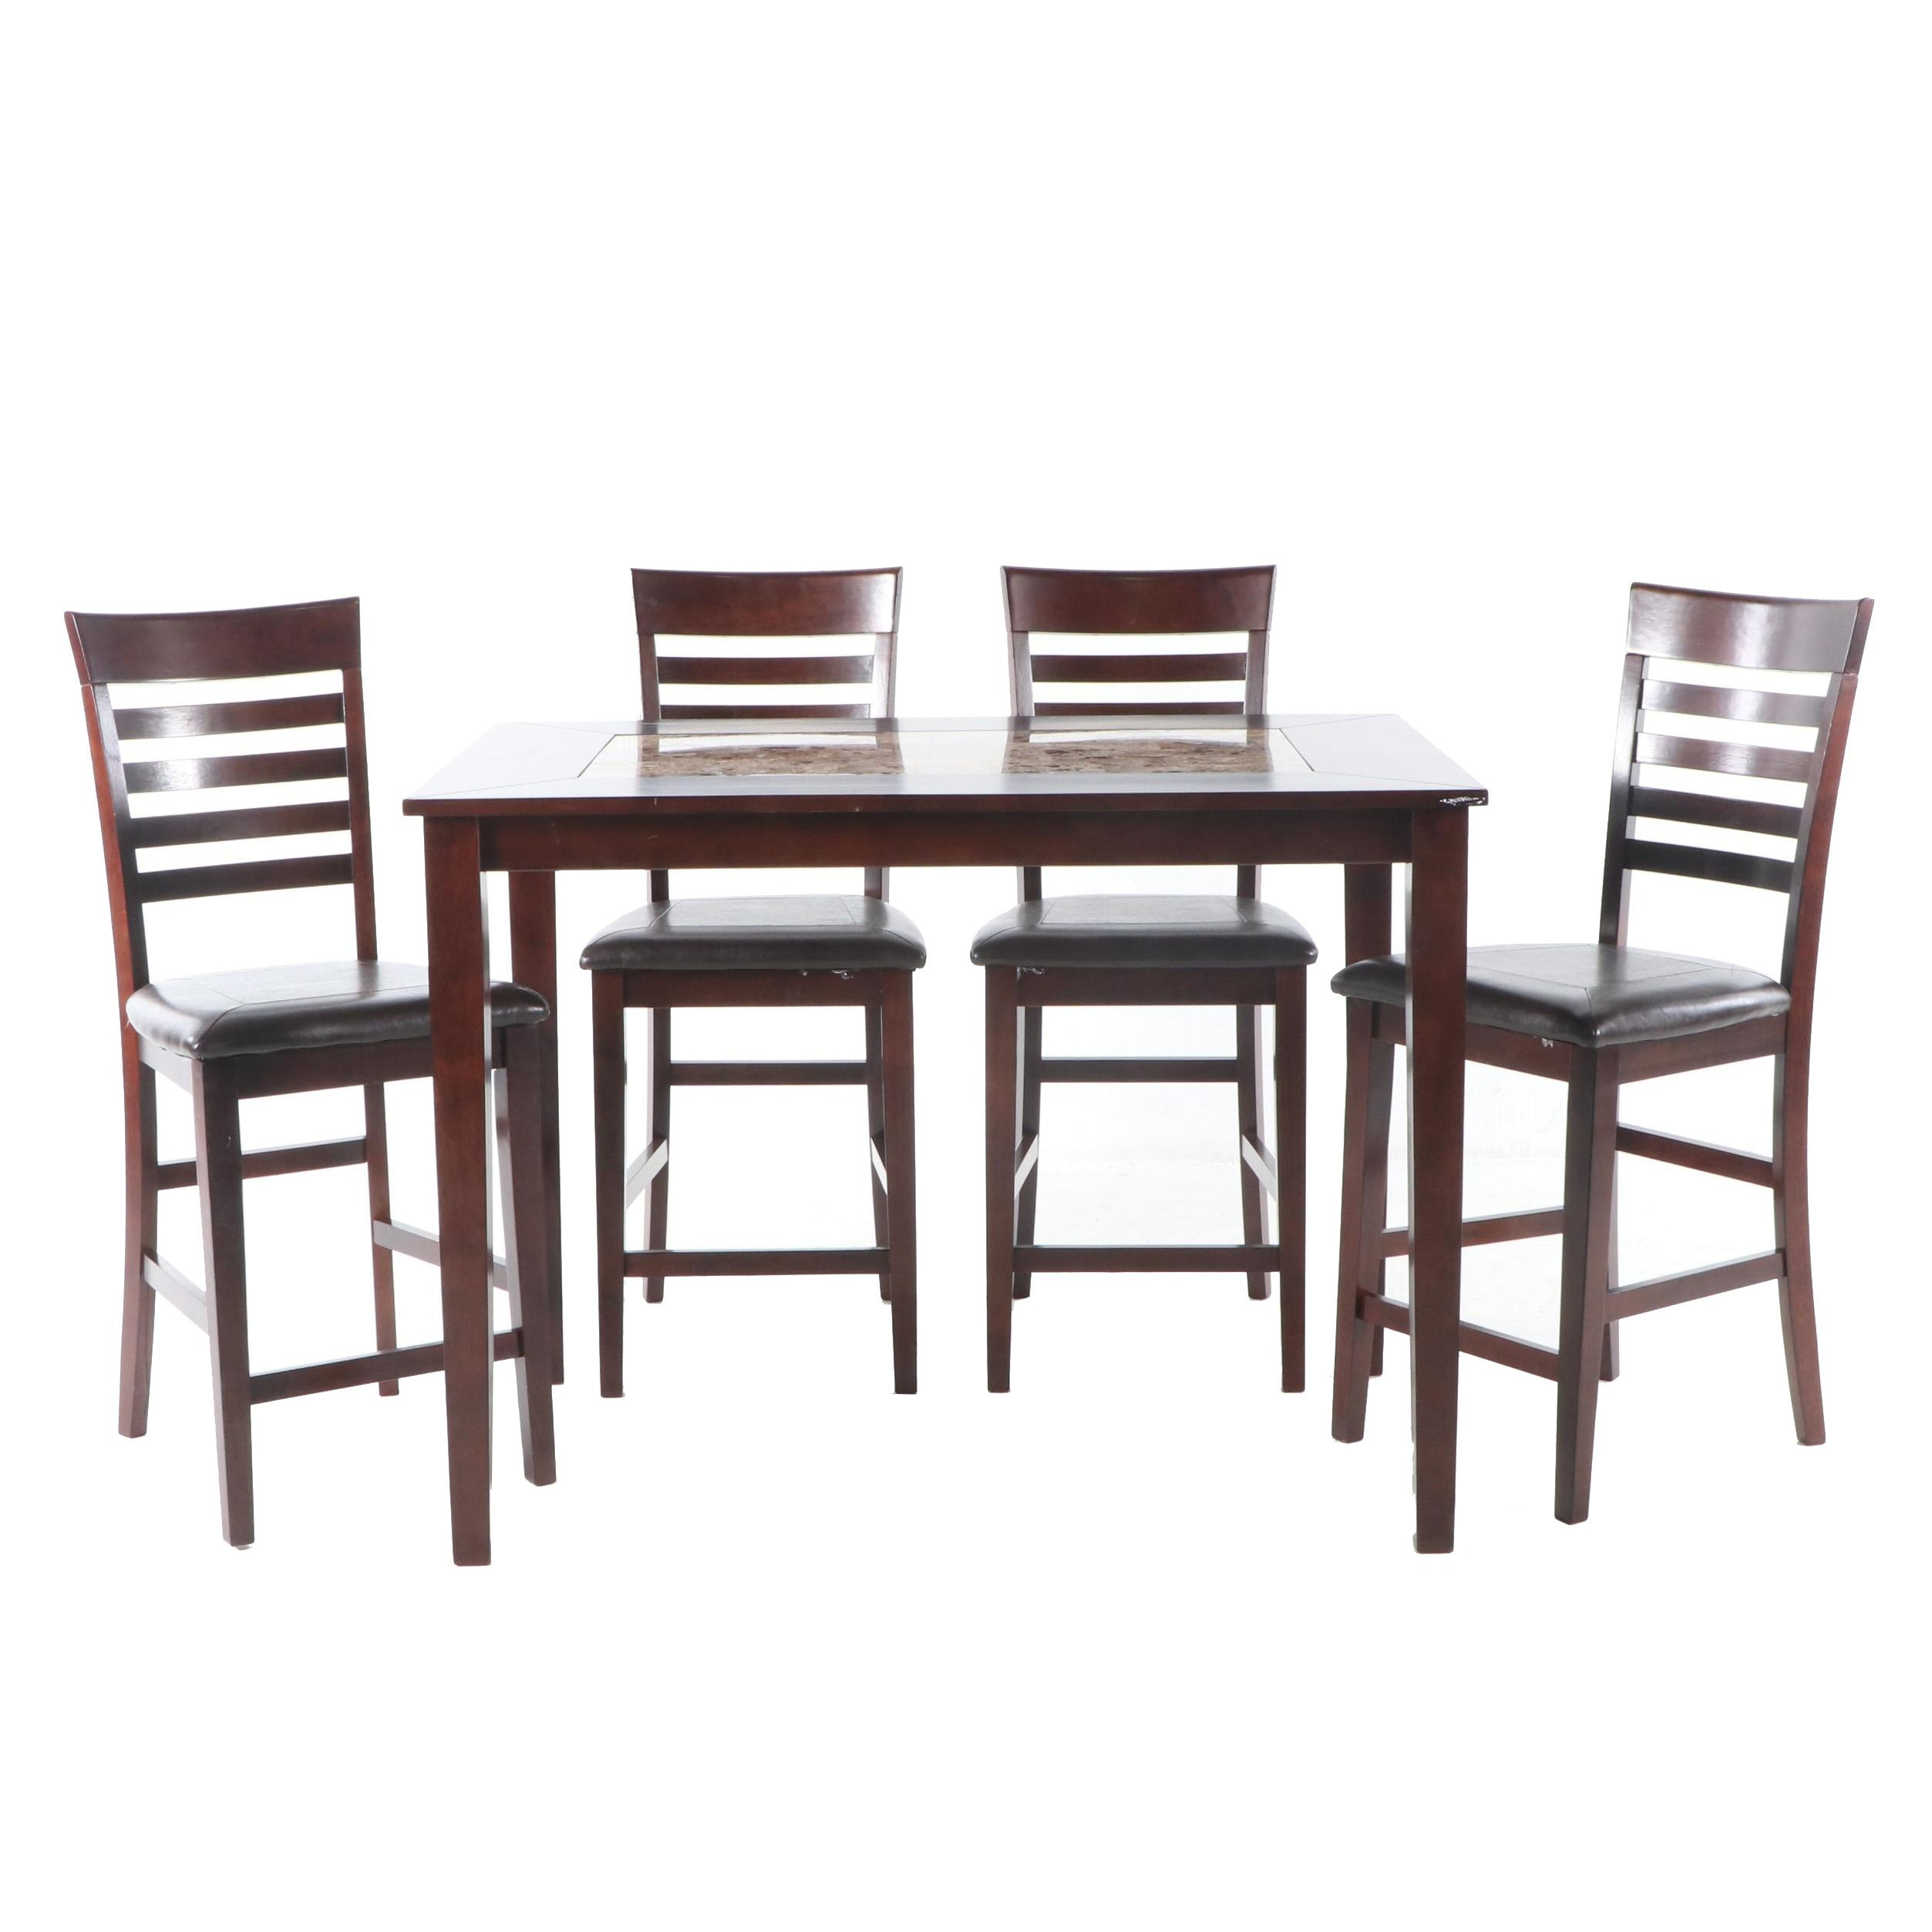 Contemporary Bar Height Dining Table and Chairs, 21st Century